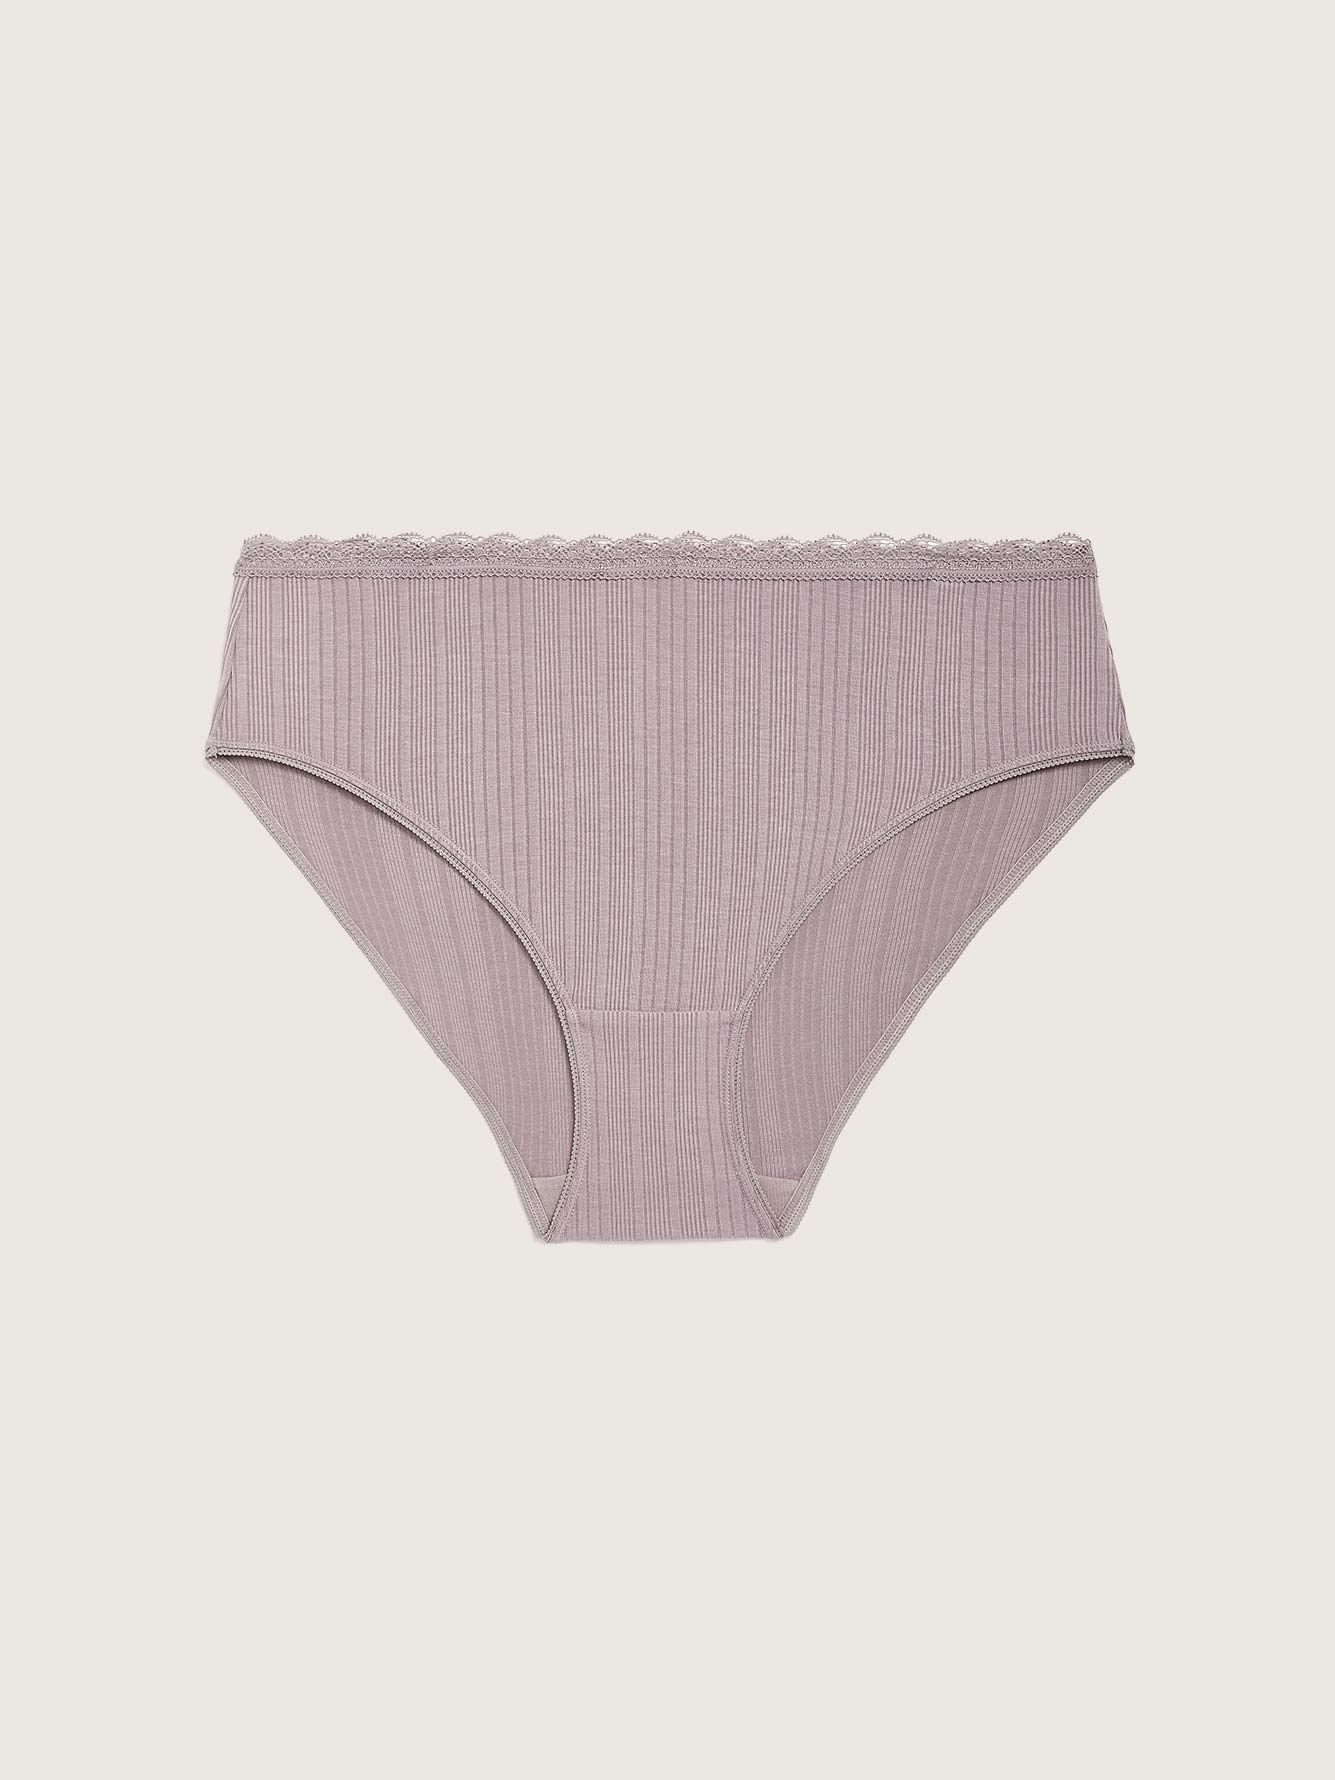 Textured High Cut Brief Panty - Addition Elle